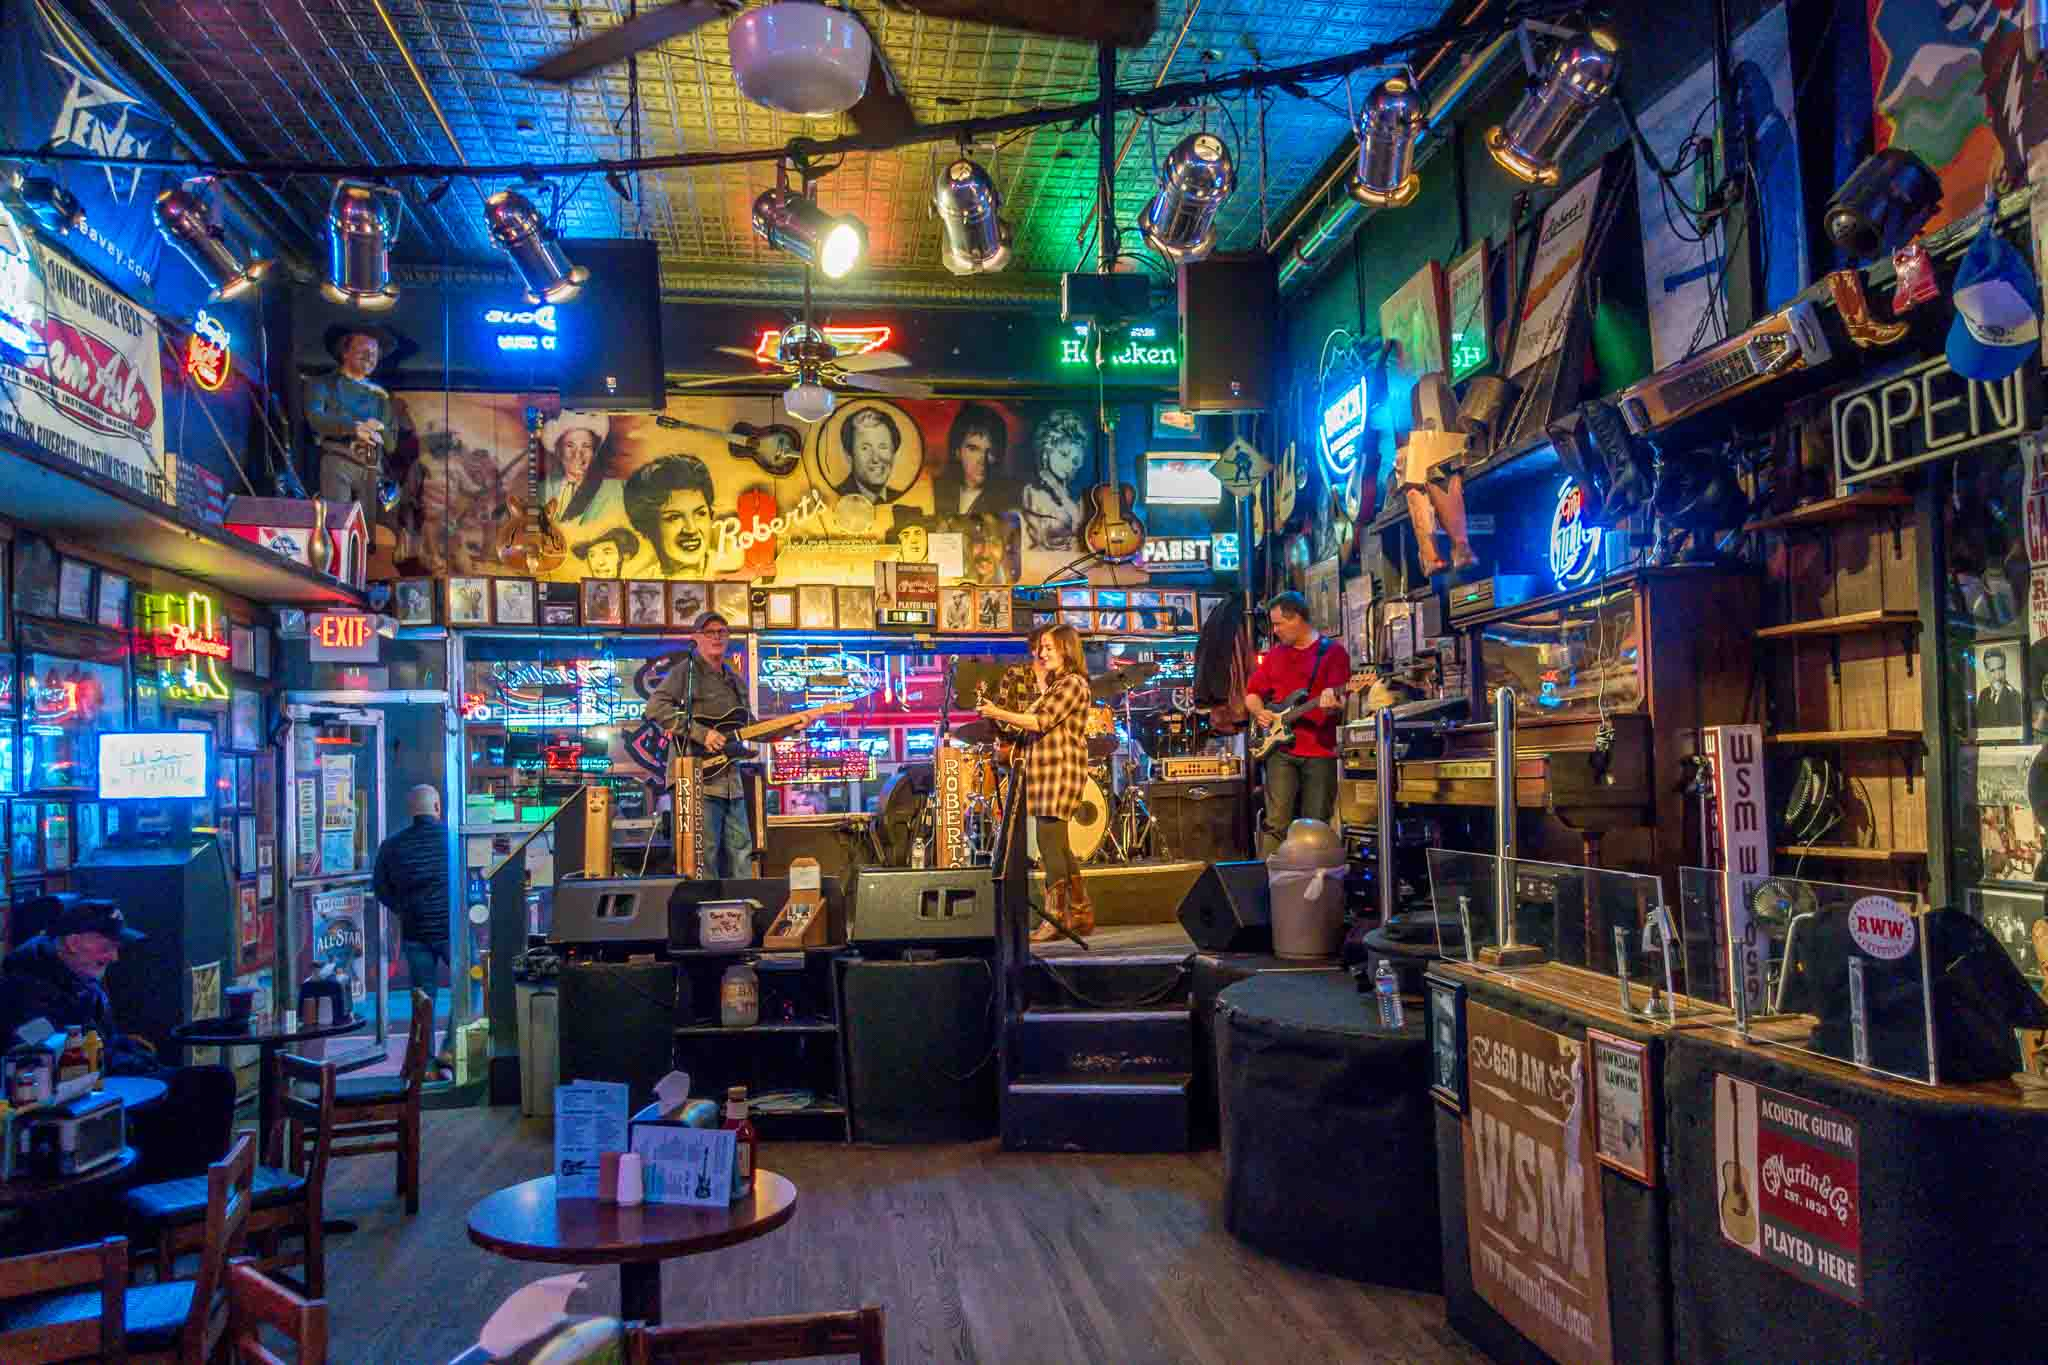 Band on stage at a memorabilia-filled honky tonk